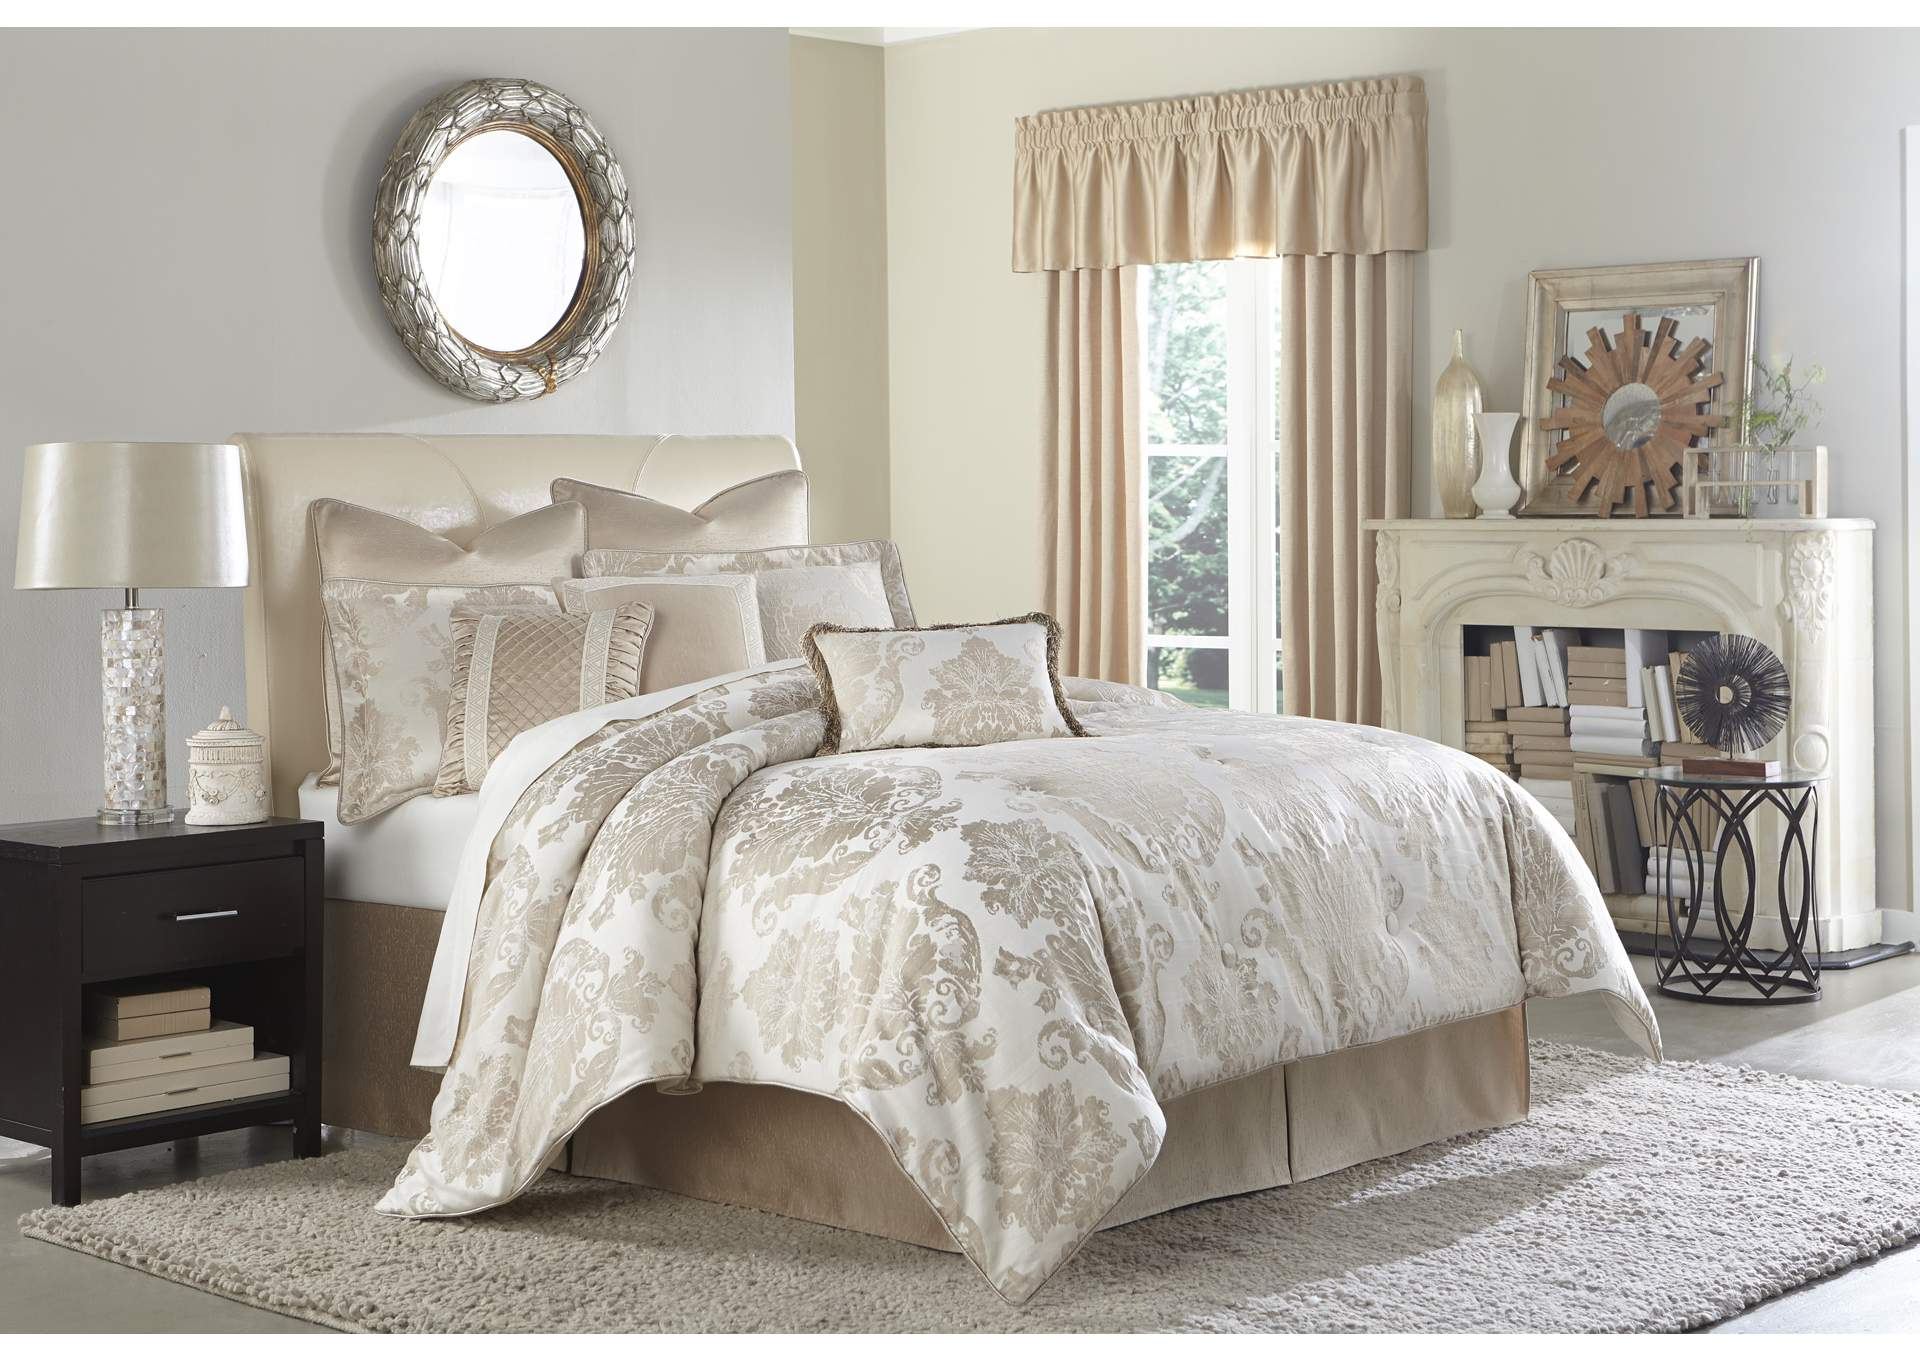 Marbella Silver 9 pc. Queen Comforter Set,AICO